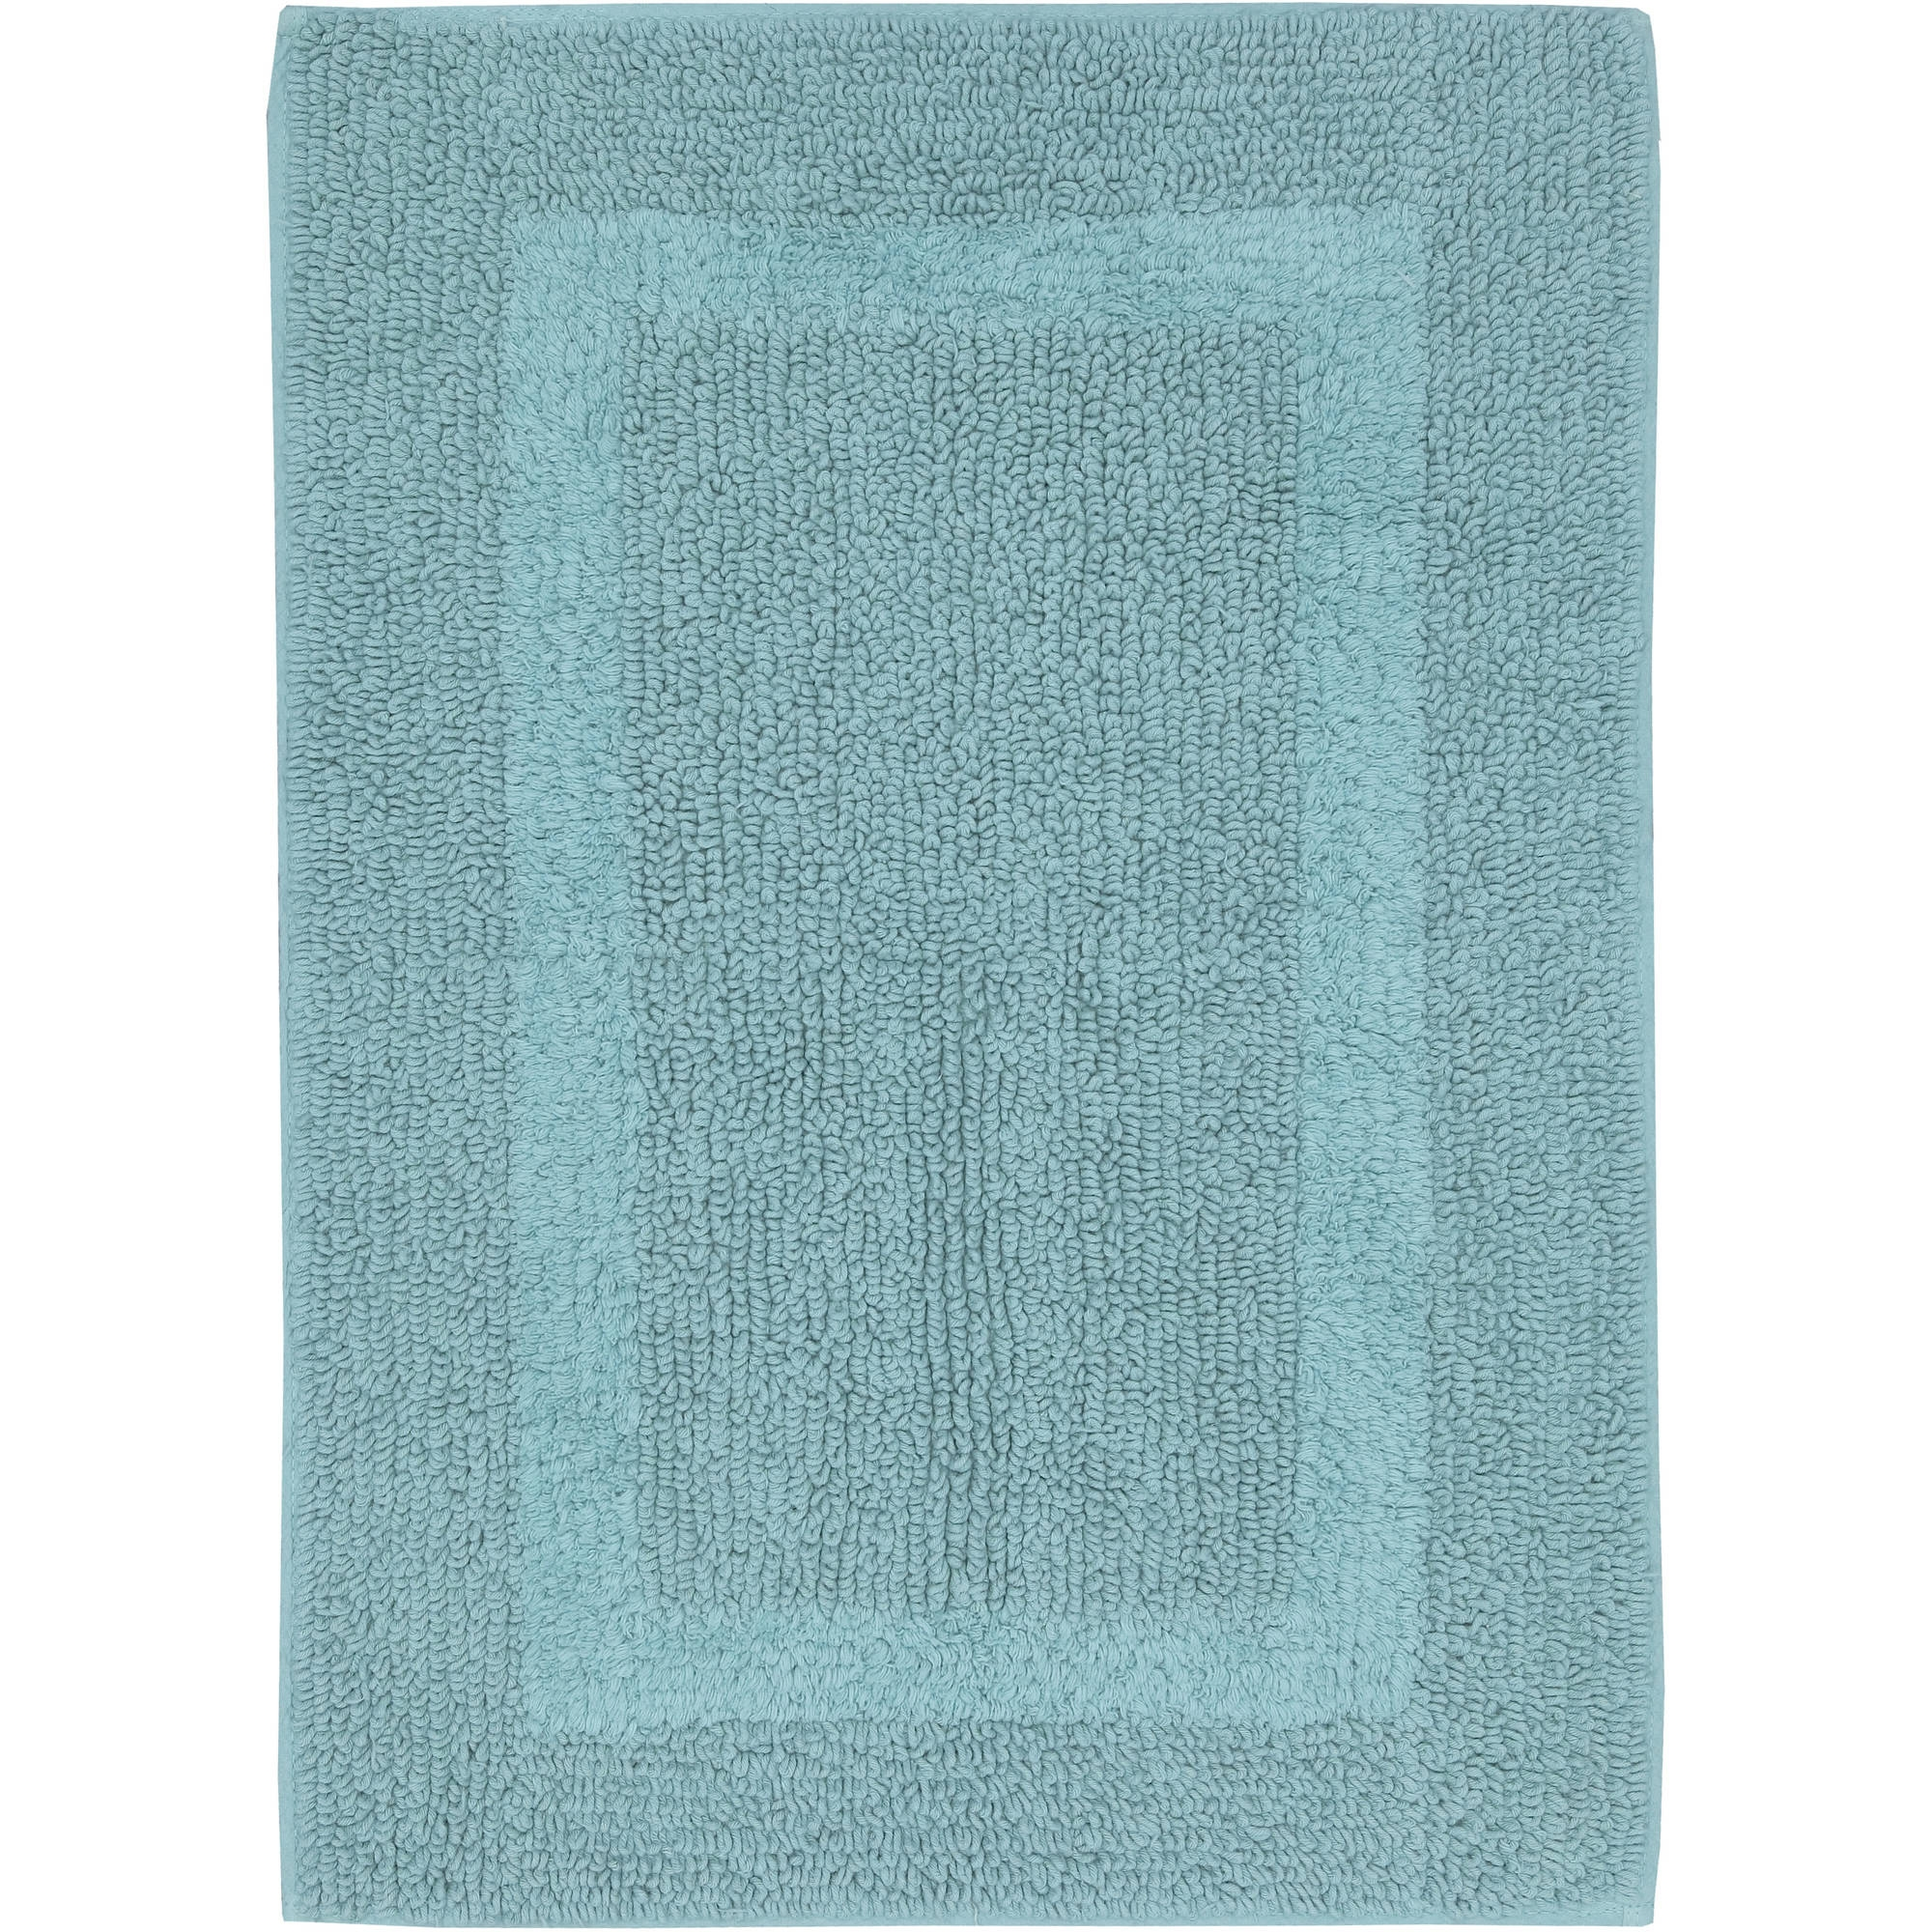 Permalink to Navy Blue And White Bathroom Rugs